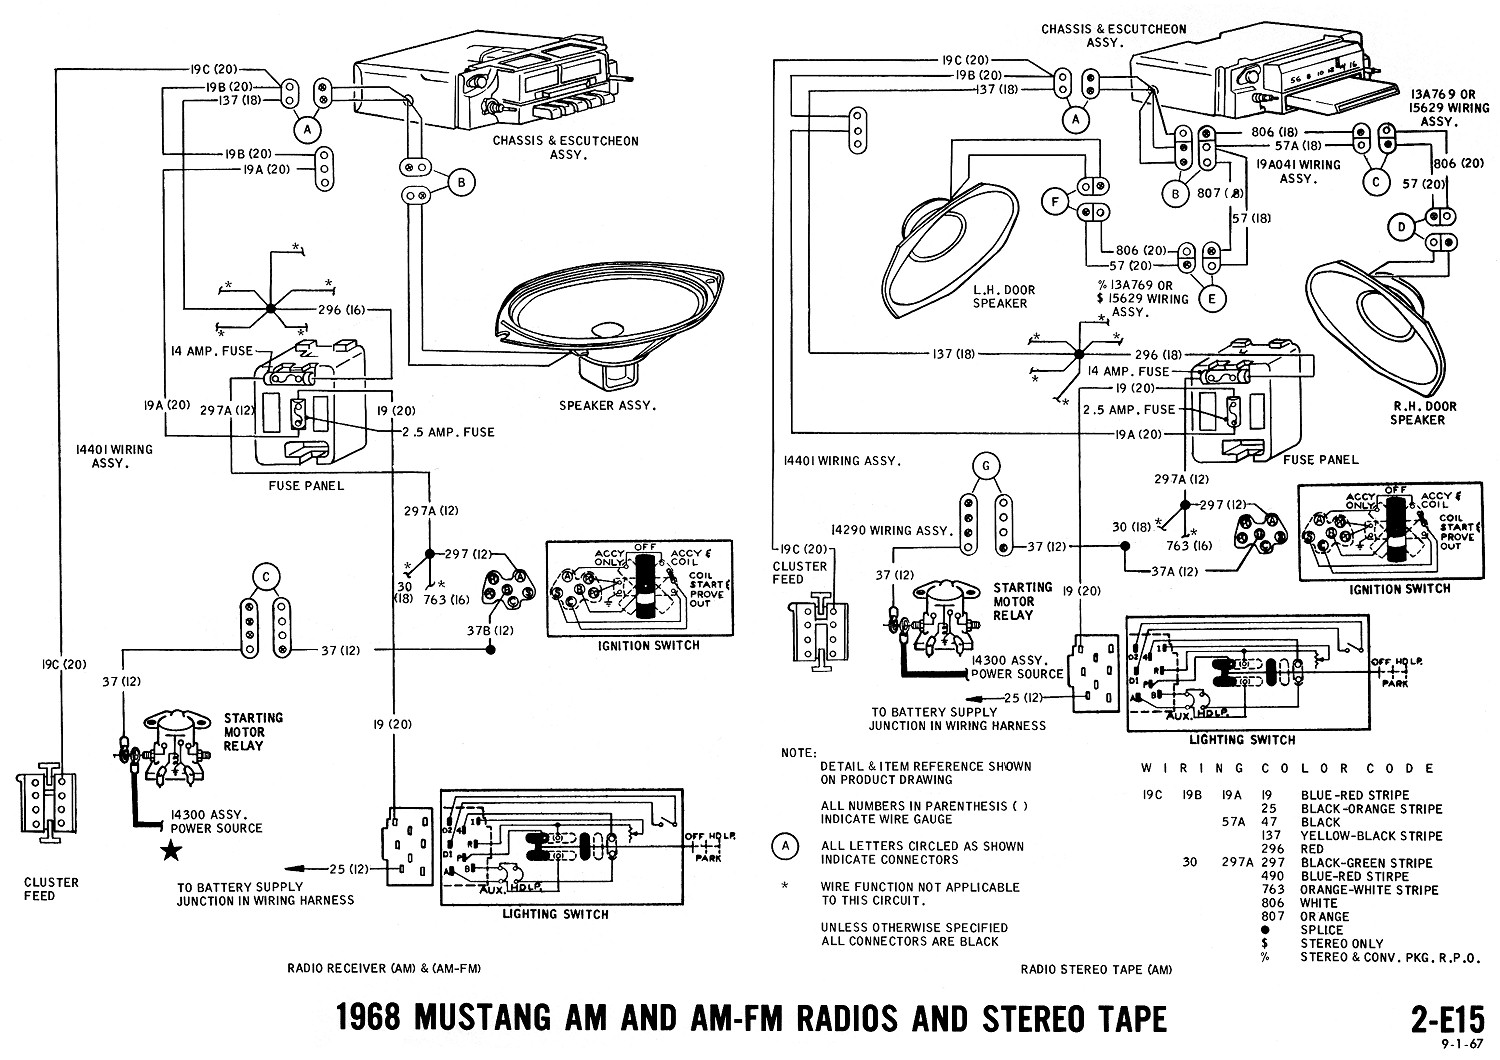 1968 Mustang Wiring Diagrams Evolving Software Coil Diagram Radio Stereo Tape